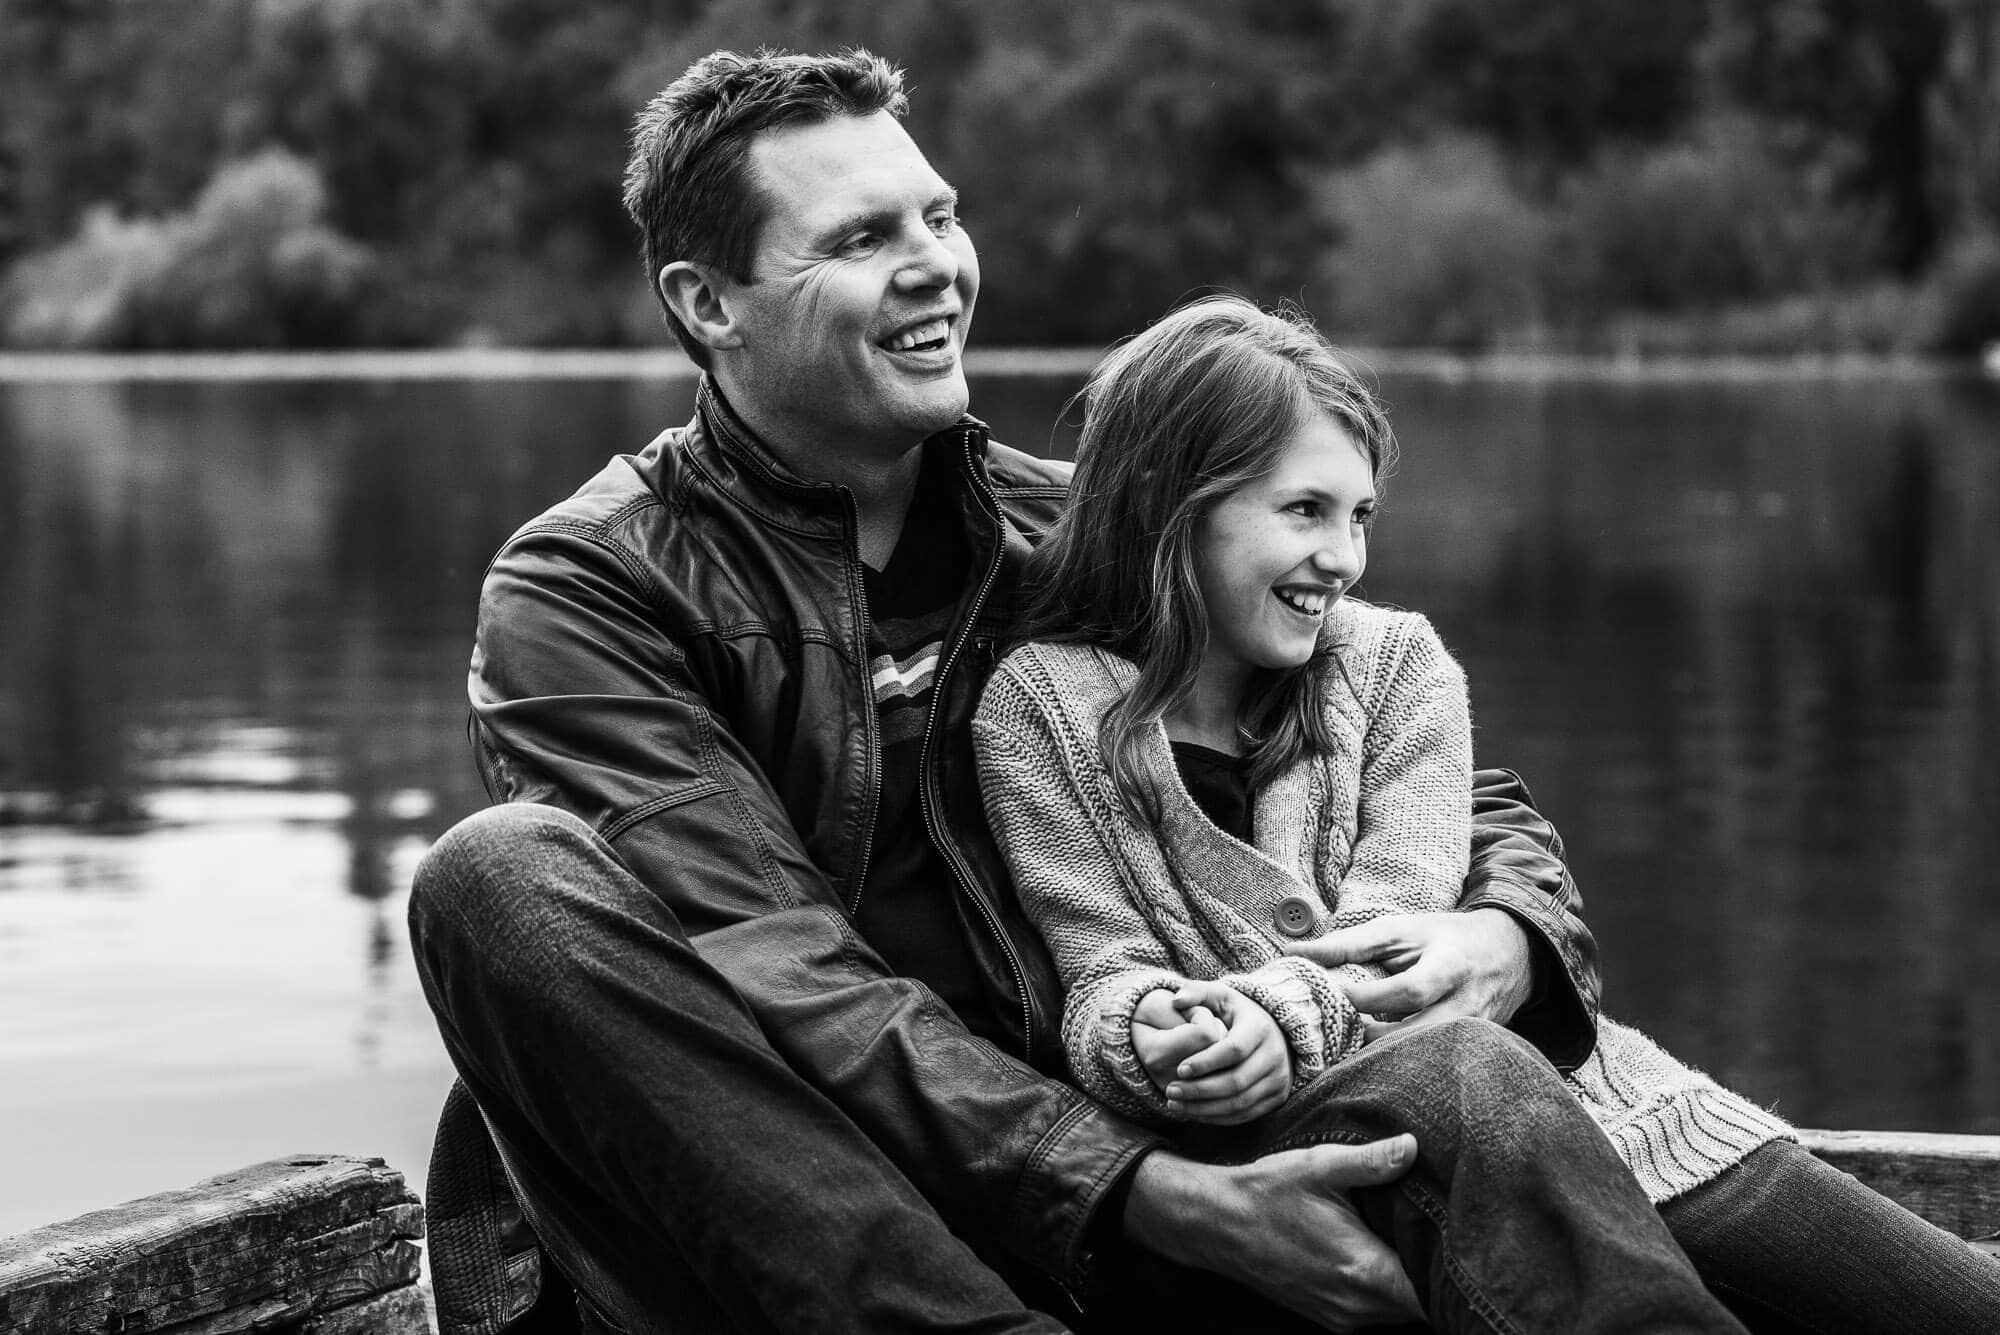 dad and daughter share a laugh next to a lake